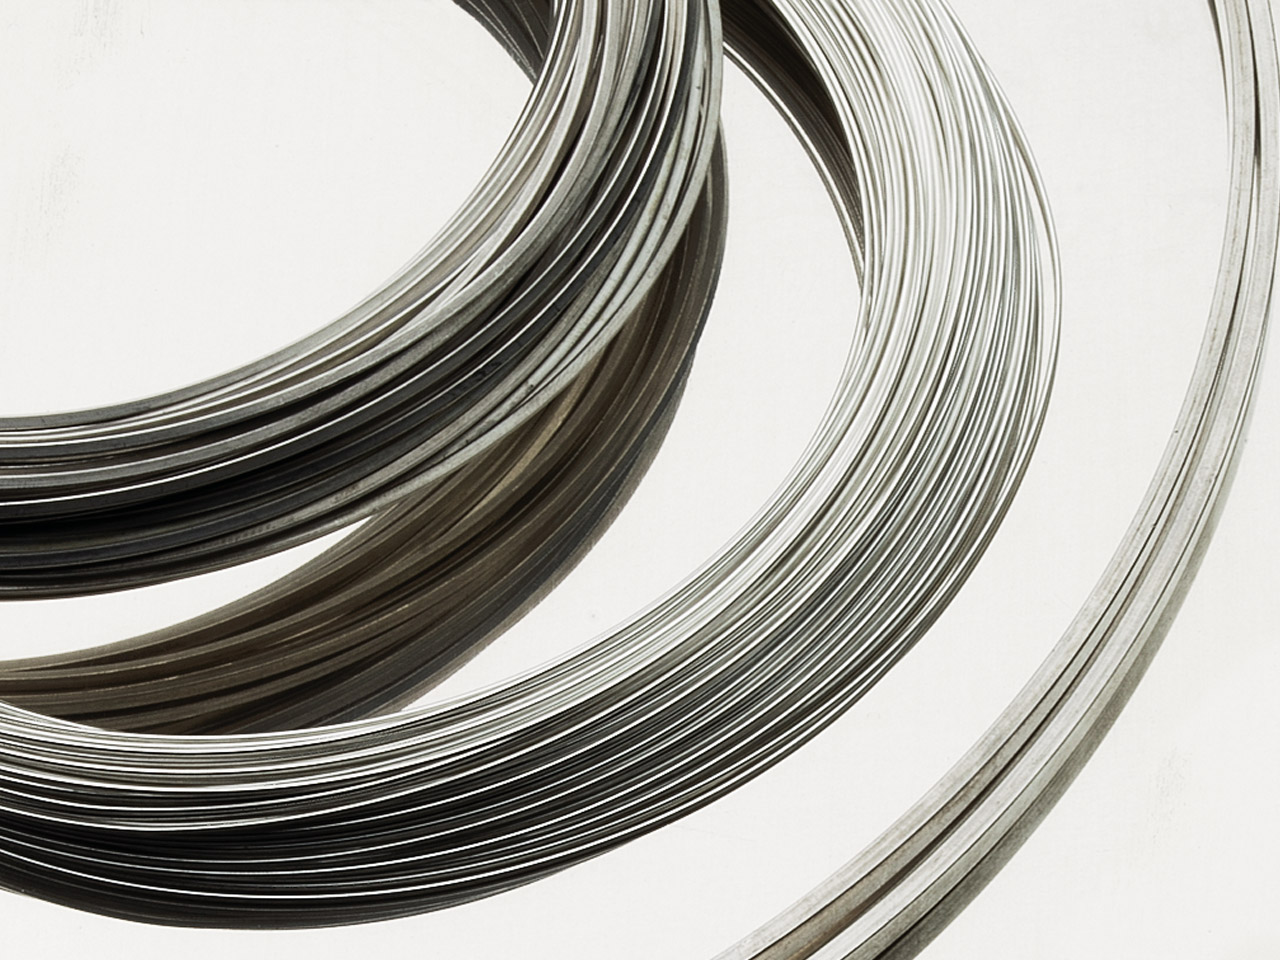 Sterling Silver Round Wire 1.20mm - cooksongold.com